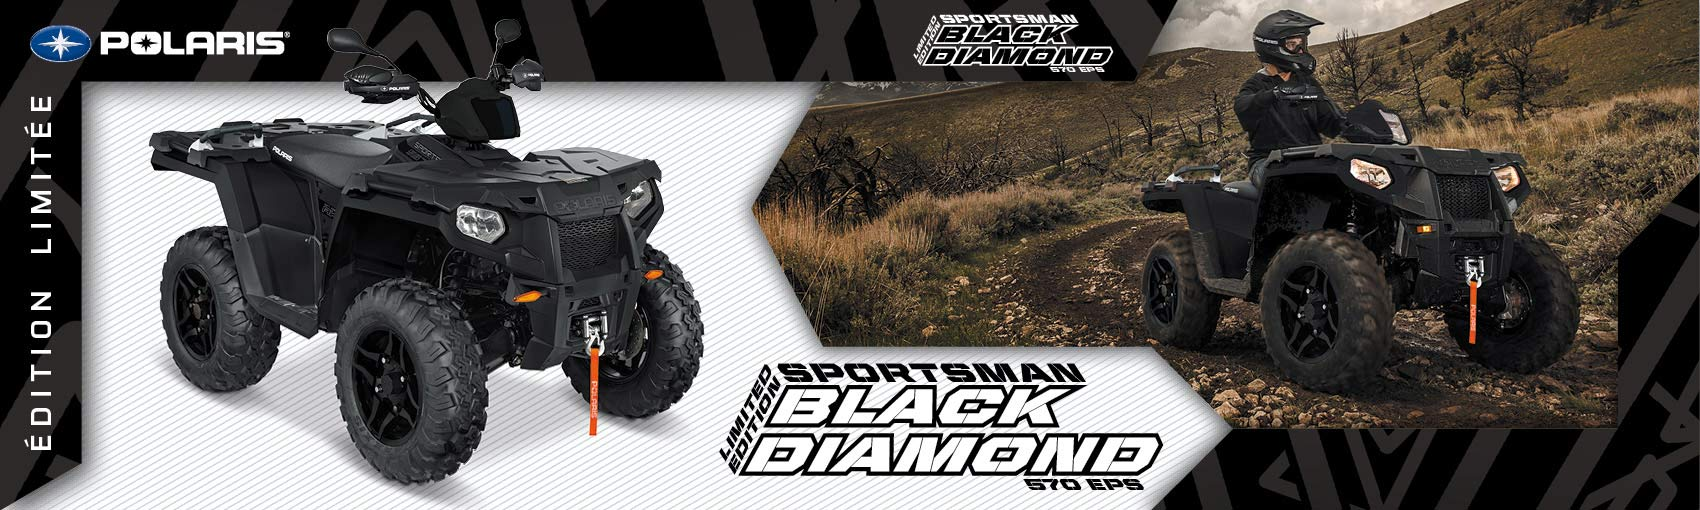 Sportsman 570 EPS Black Diamond